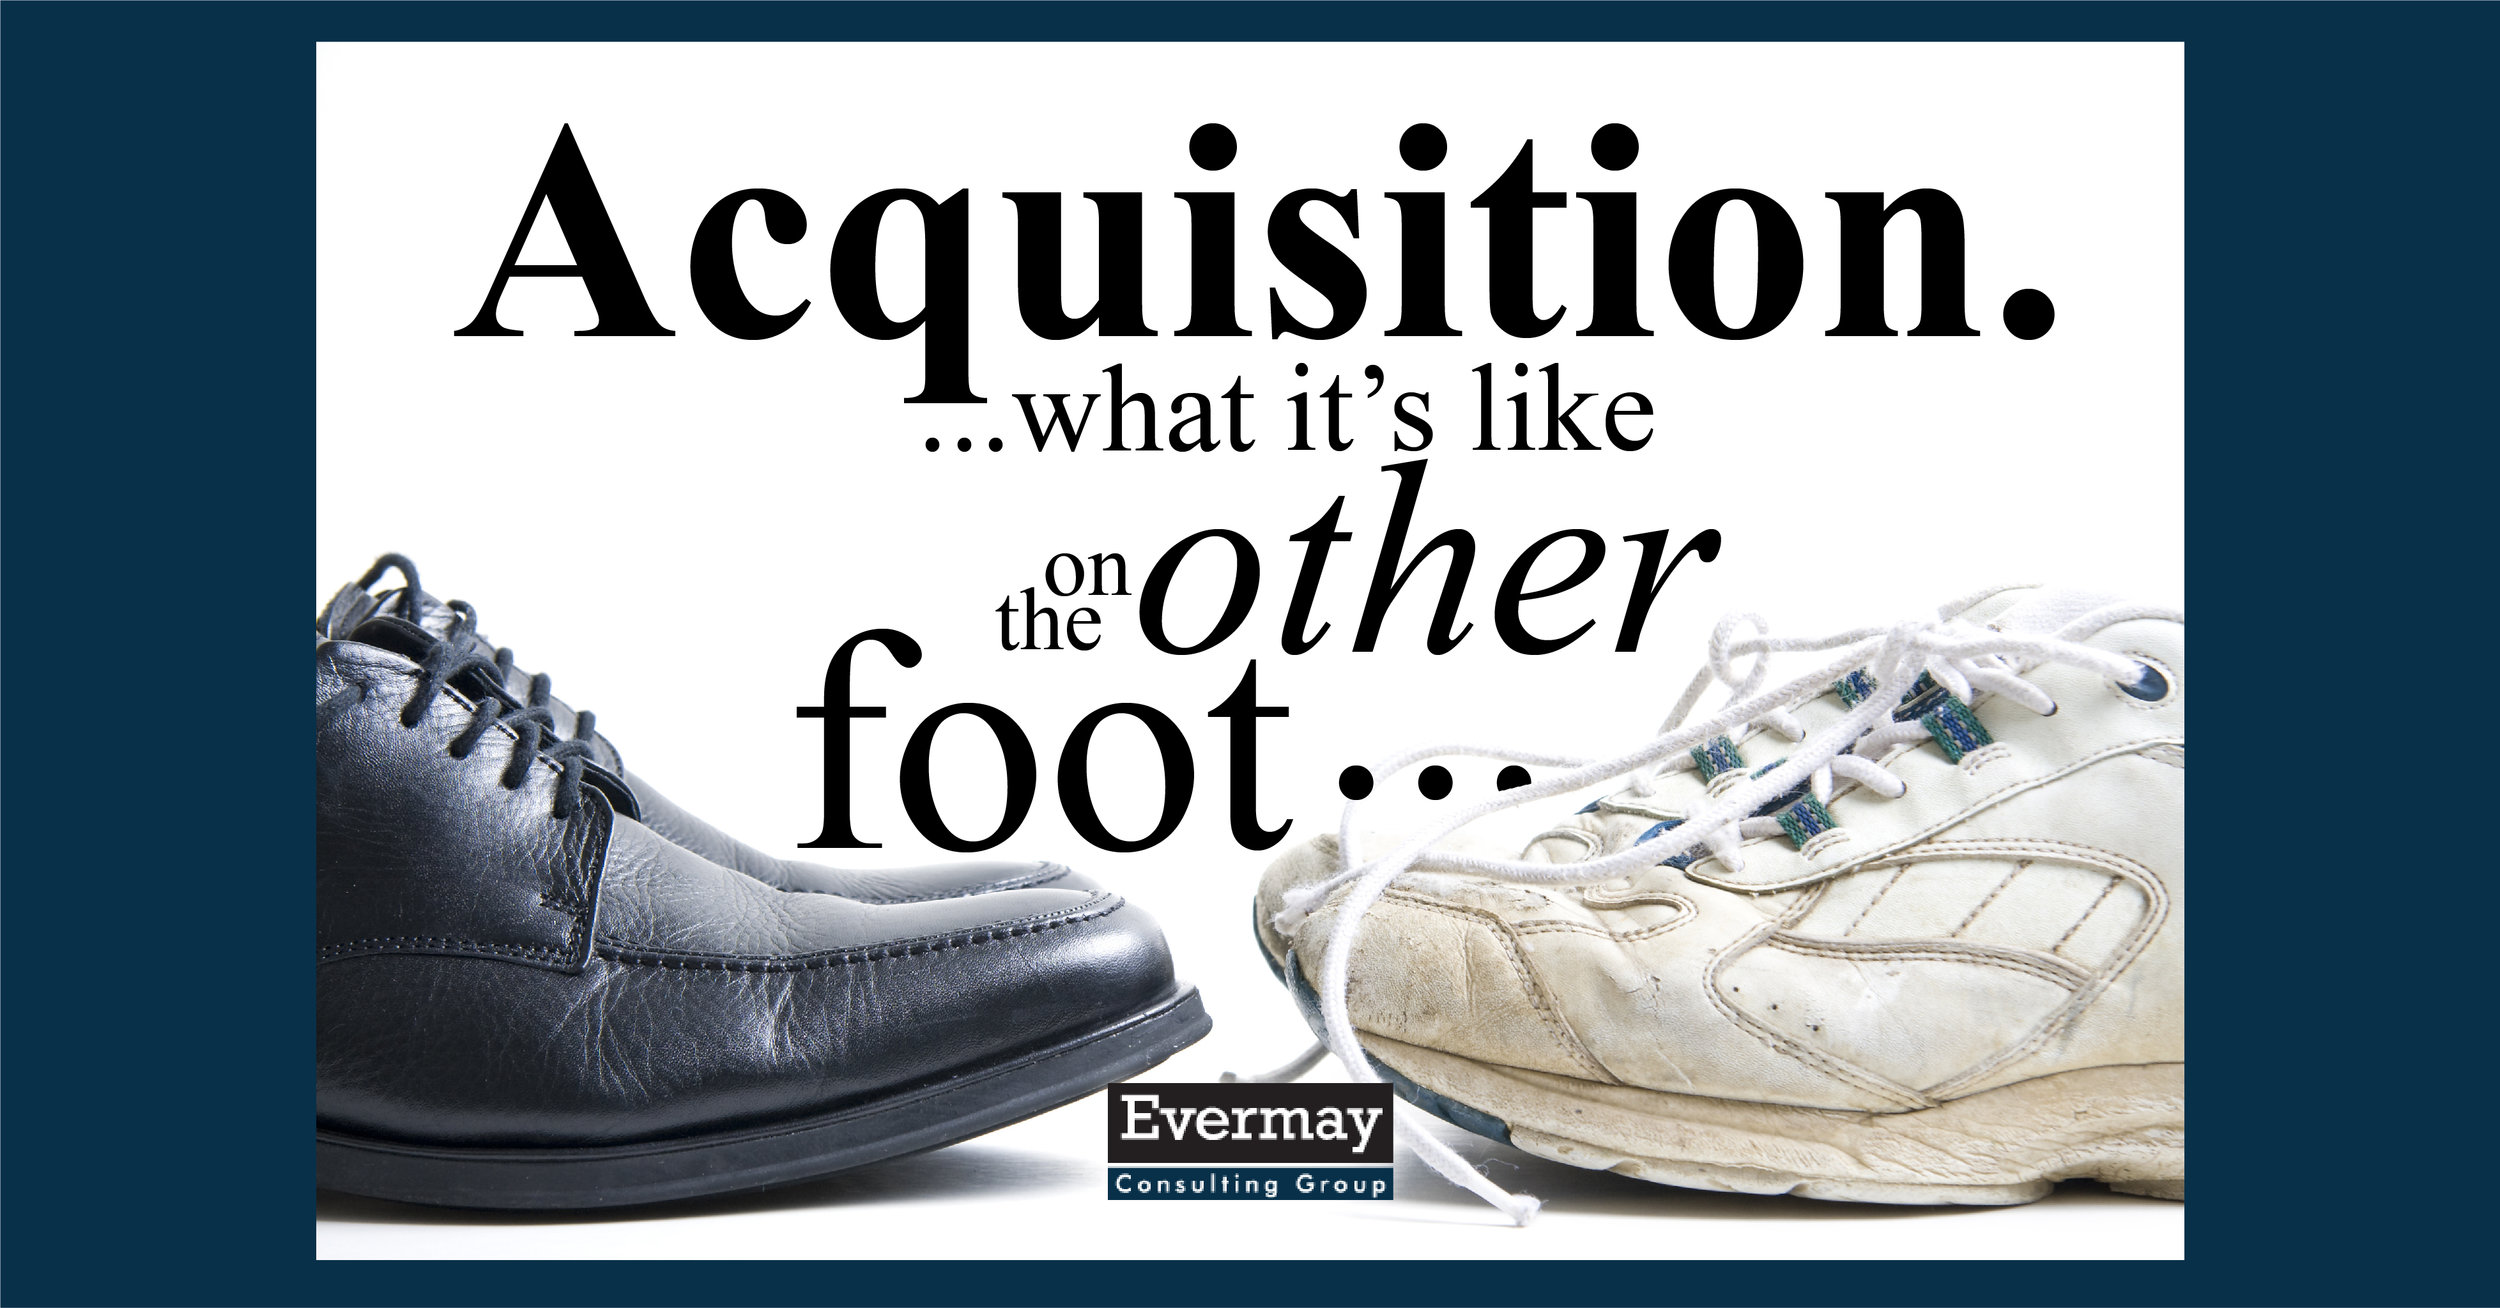 Acquisition Other Foot-01.jpg